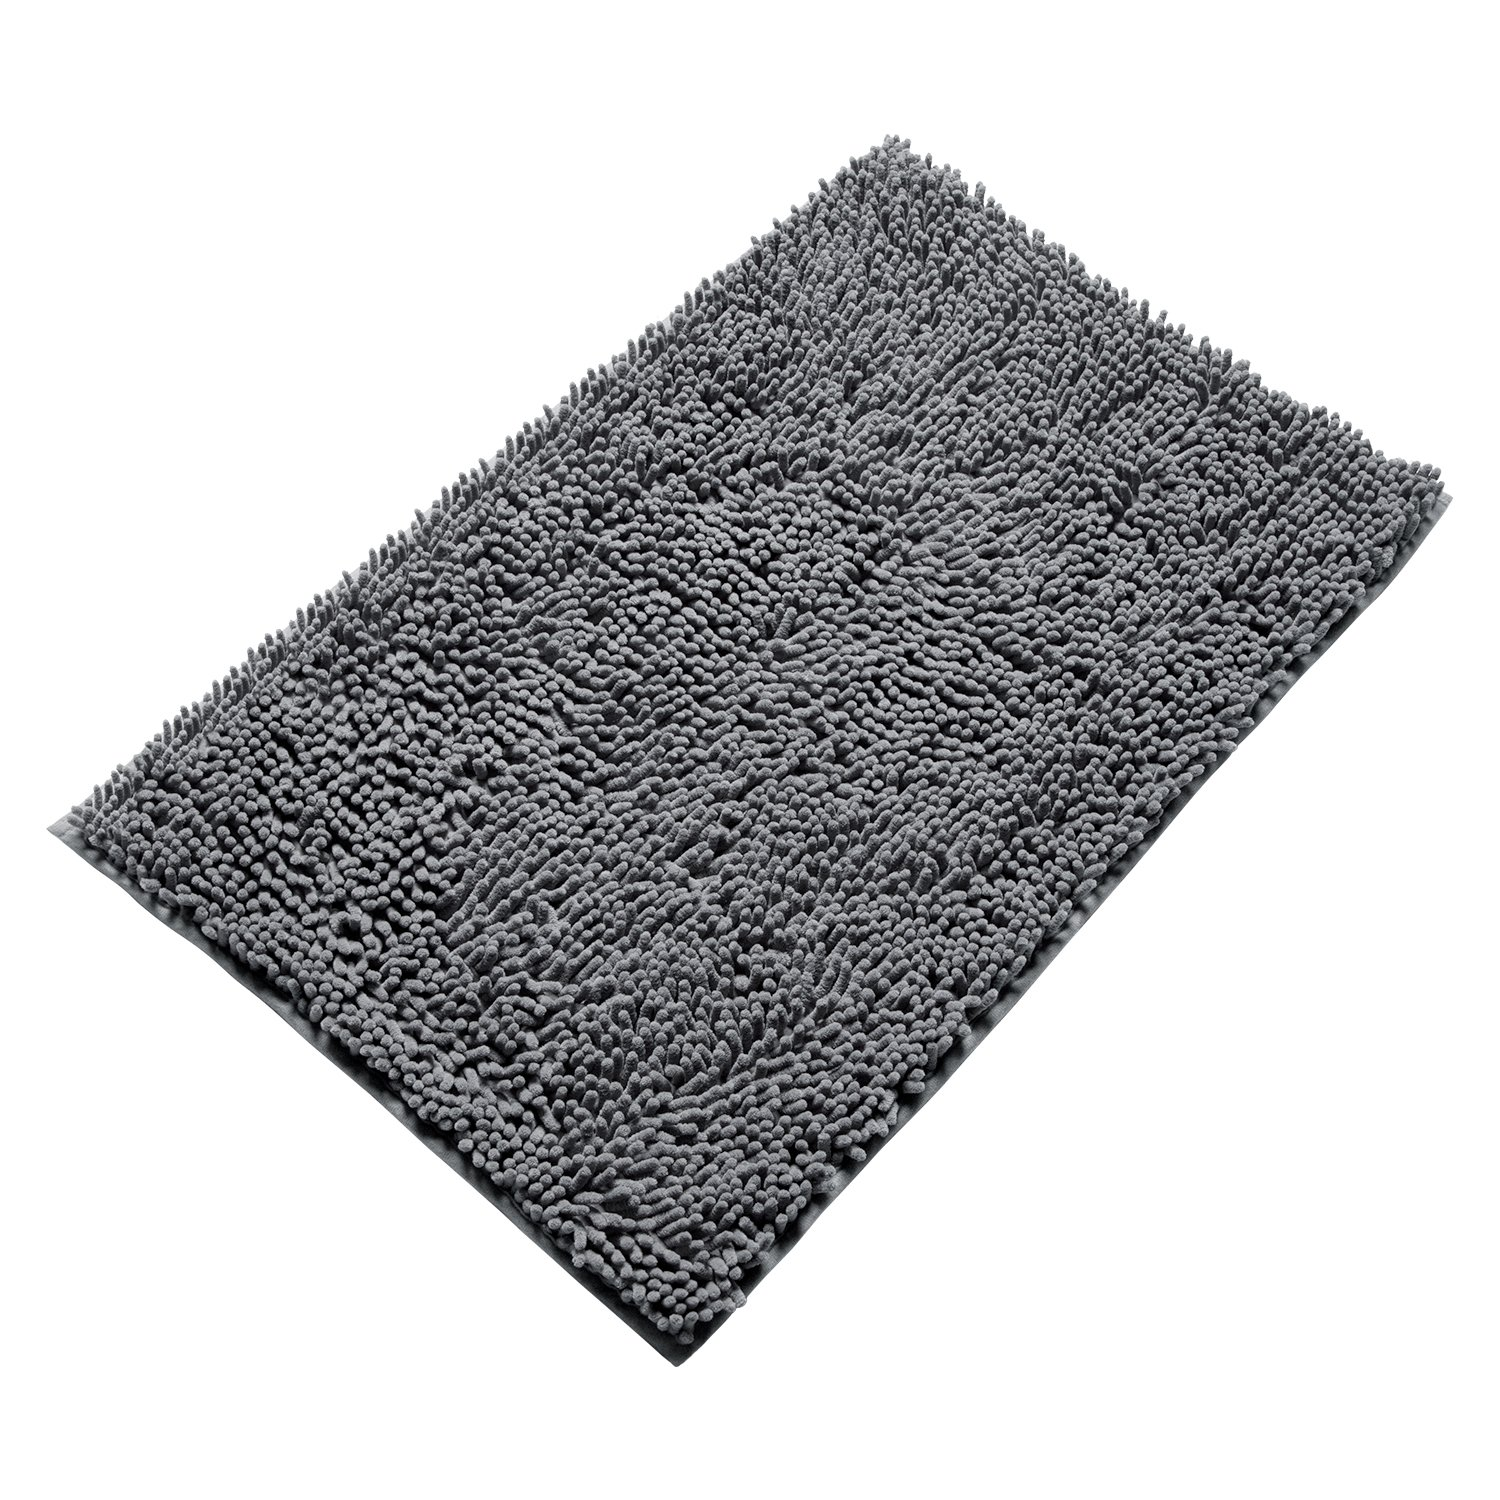 Shop Amazoncom Bath Rugs - Reversible bathroom rugs for bathroom decorating ideas